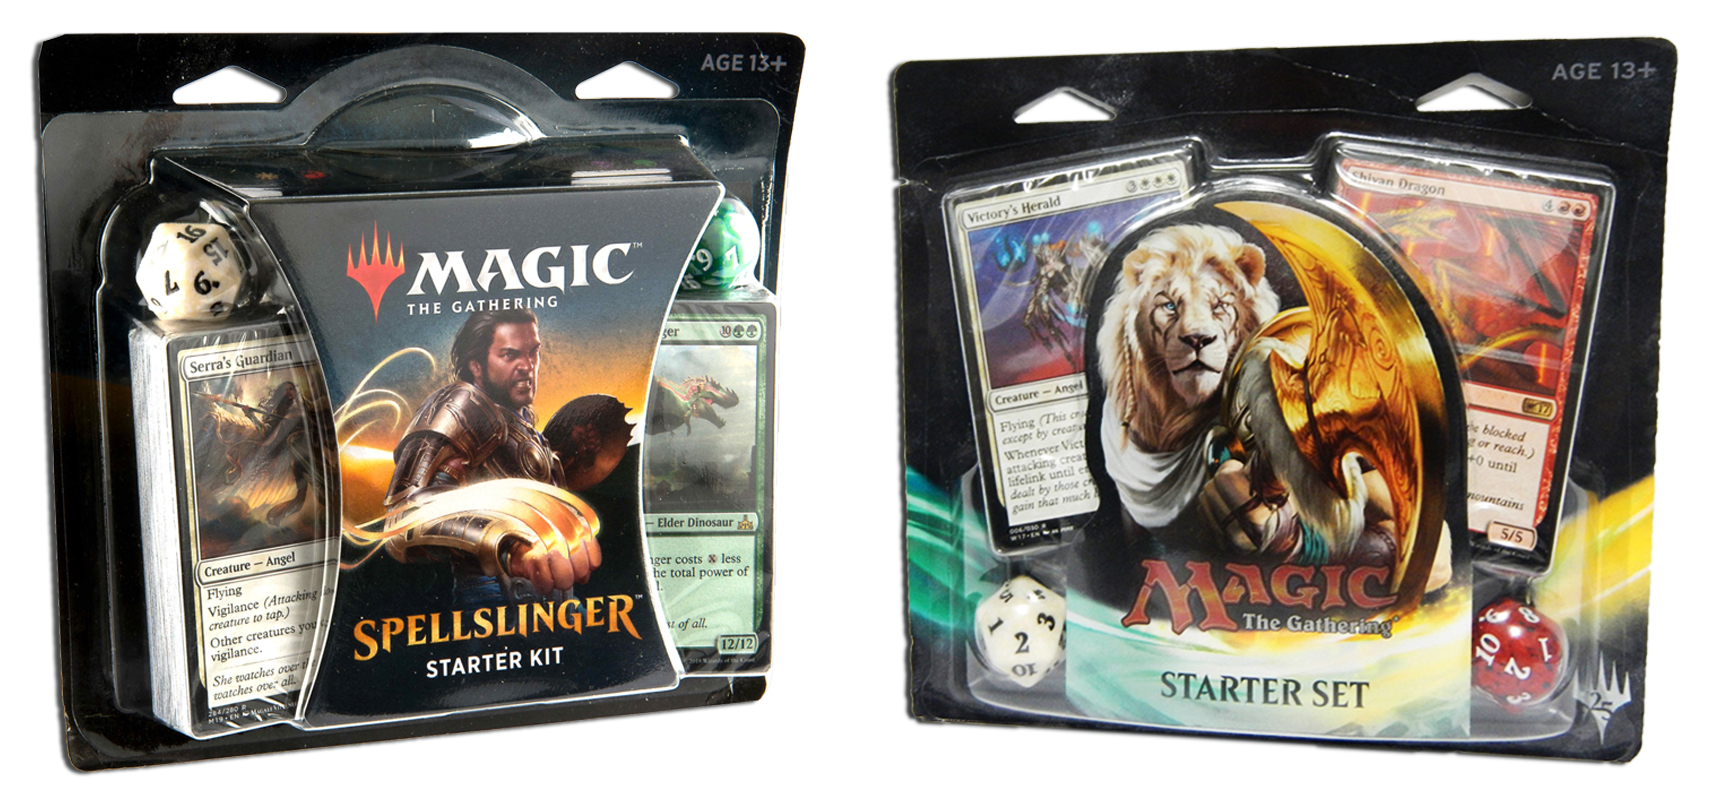 Magic-The-Gathering-STARTER-KIT